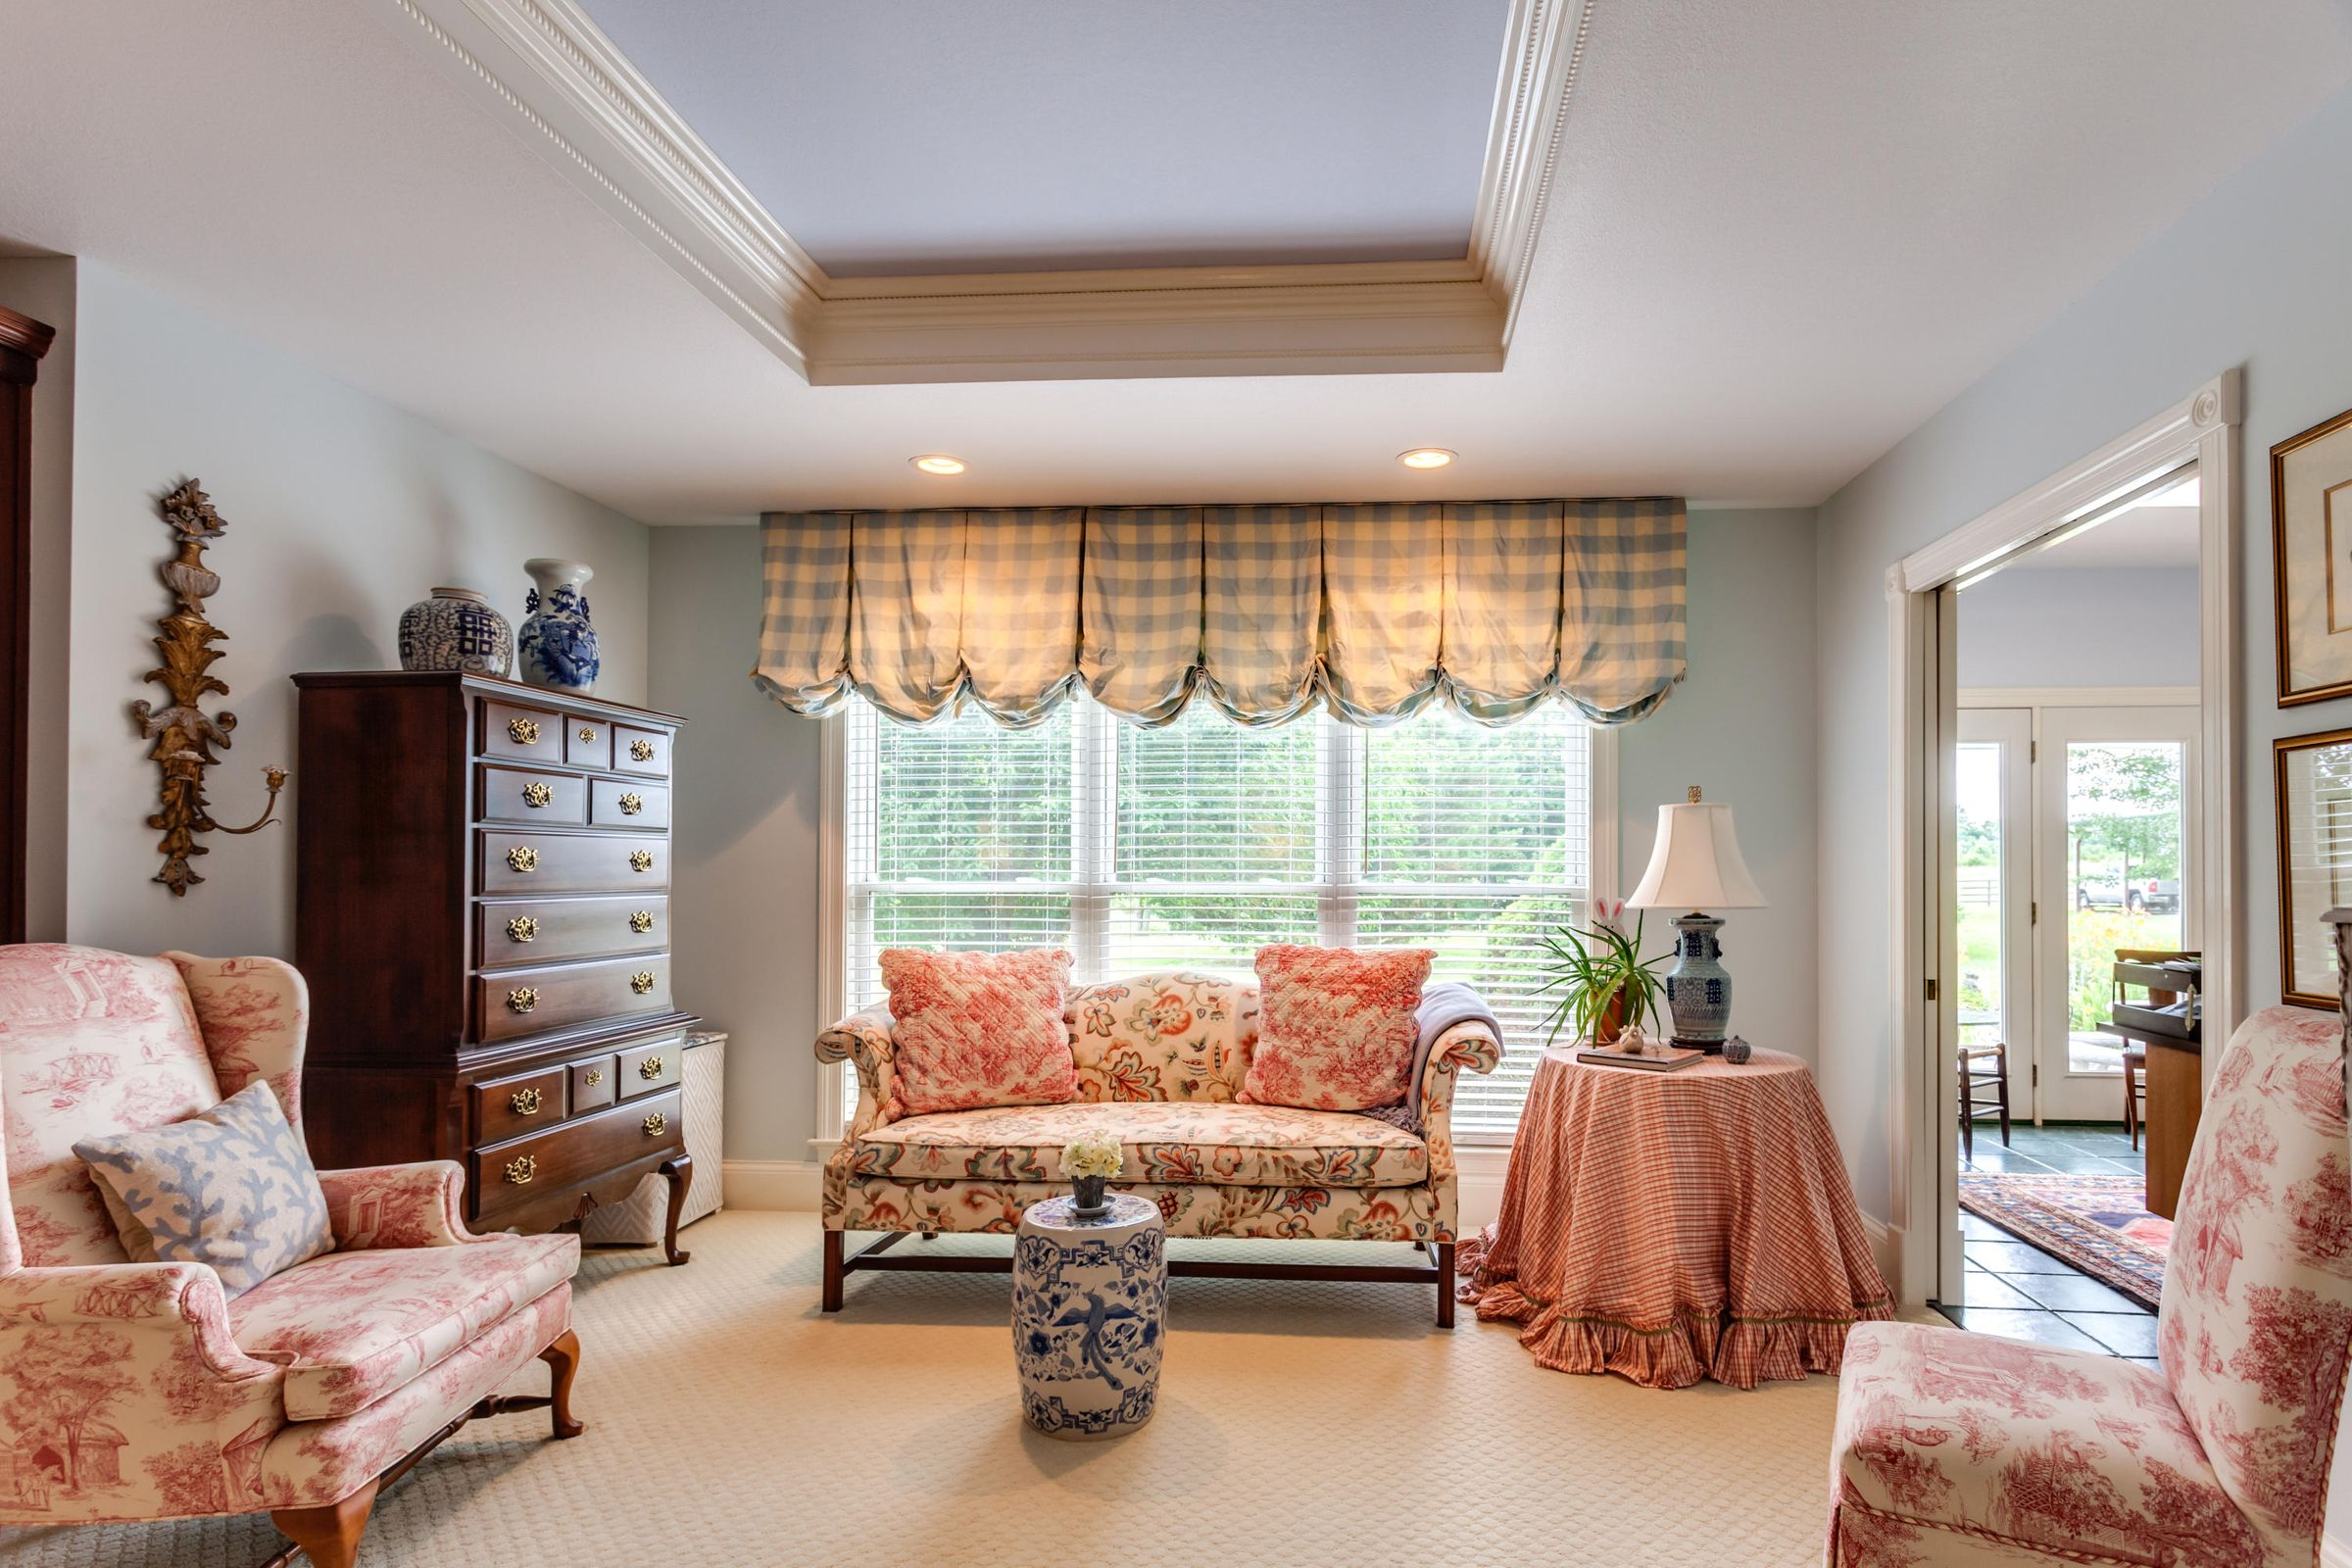 Relax in the Master bedroom sitting area